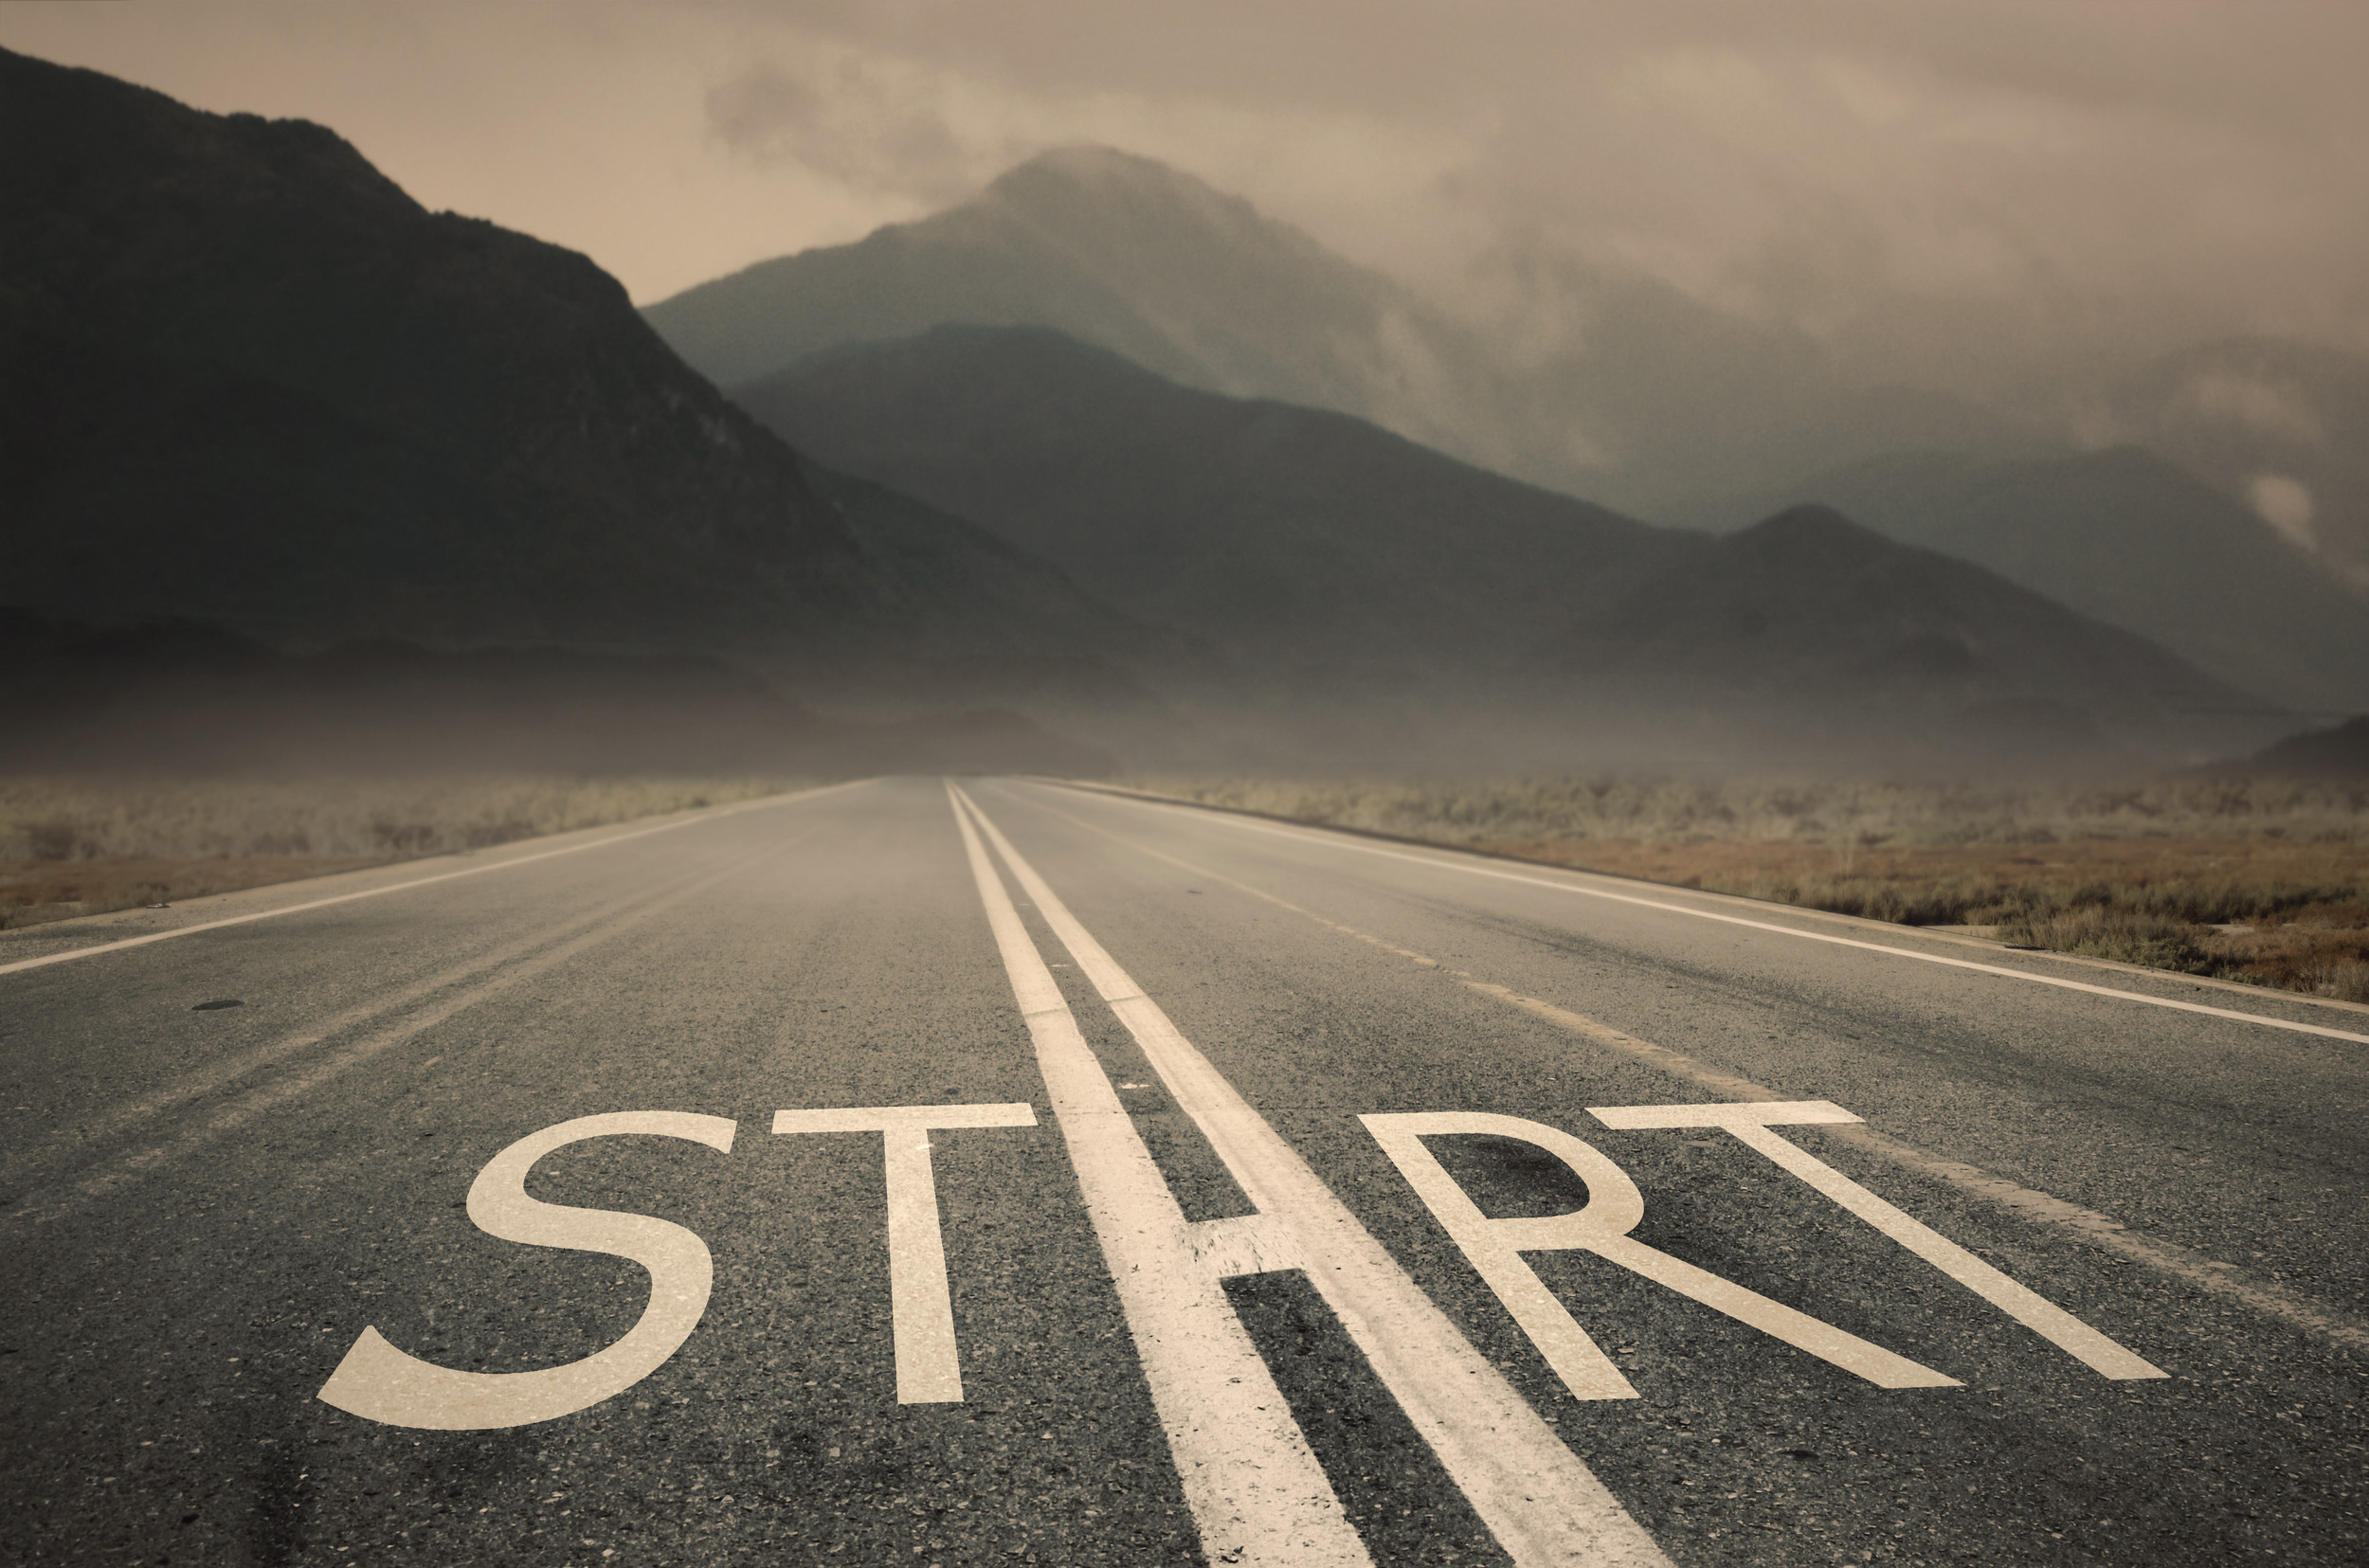 Want to start a business? First you need a plan